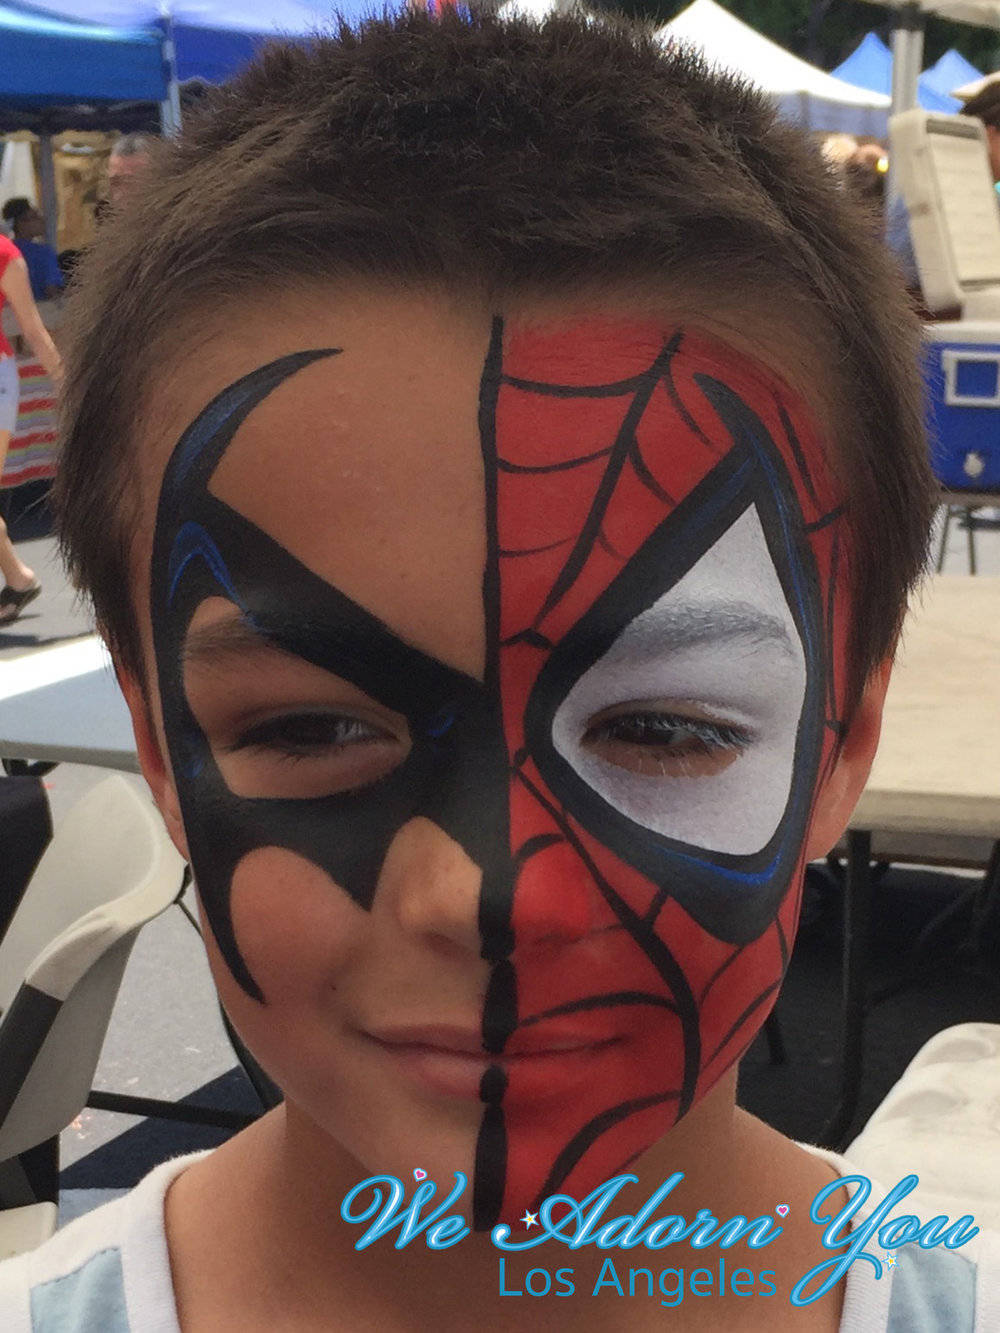 We Adorn You Los Angeles Face Painting Batman Spiderman.jpg